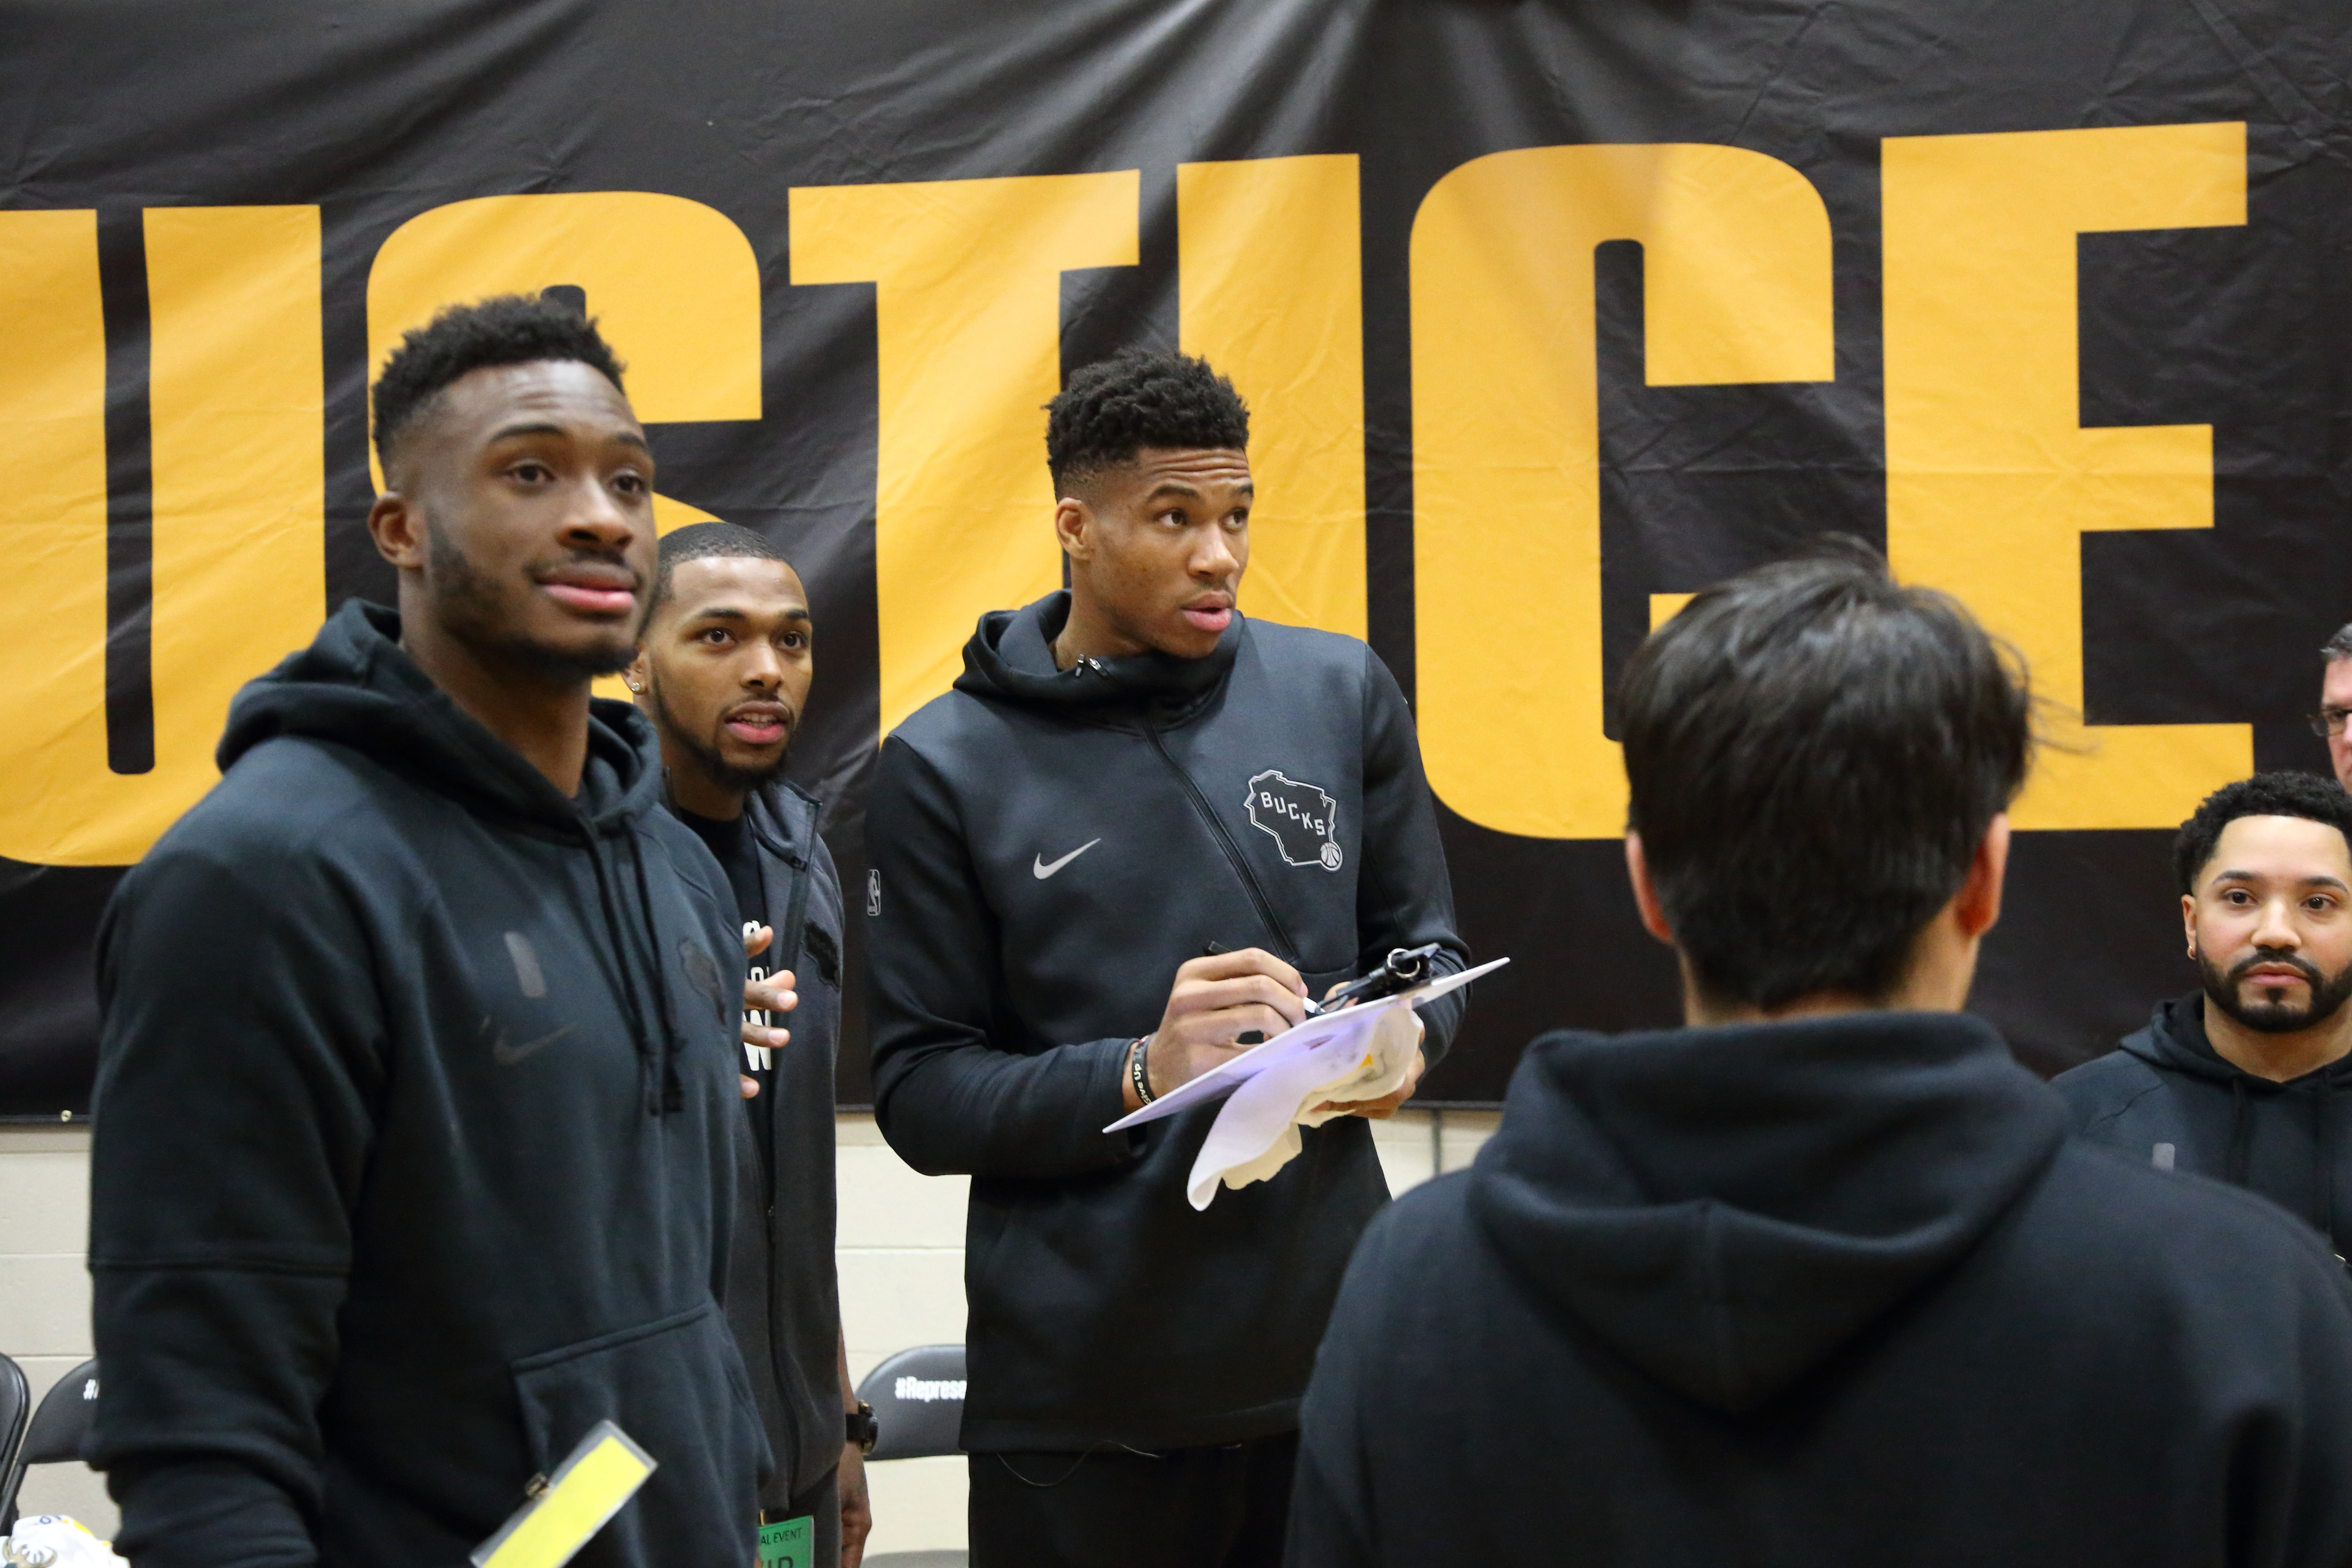 In partnership with REPRESENT JUSTICE Campaign, the Bucks hosted a basketball game Dec. 17, 2019 at Racine Correctional Institution in which members of the coaching staff played with incarcerated individuals, while Bucks players served as coaches.(Gary Dineen/Milwaukee Bucks)